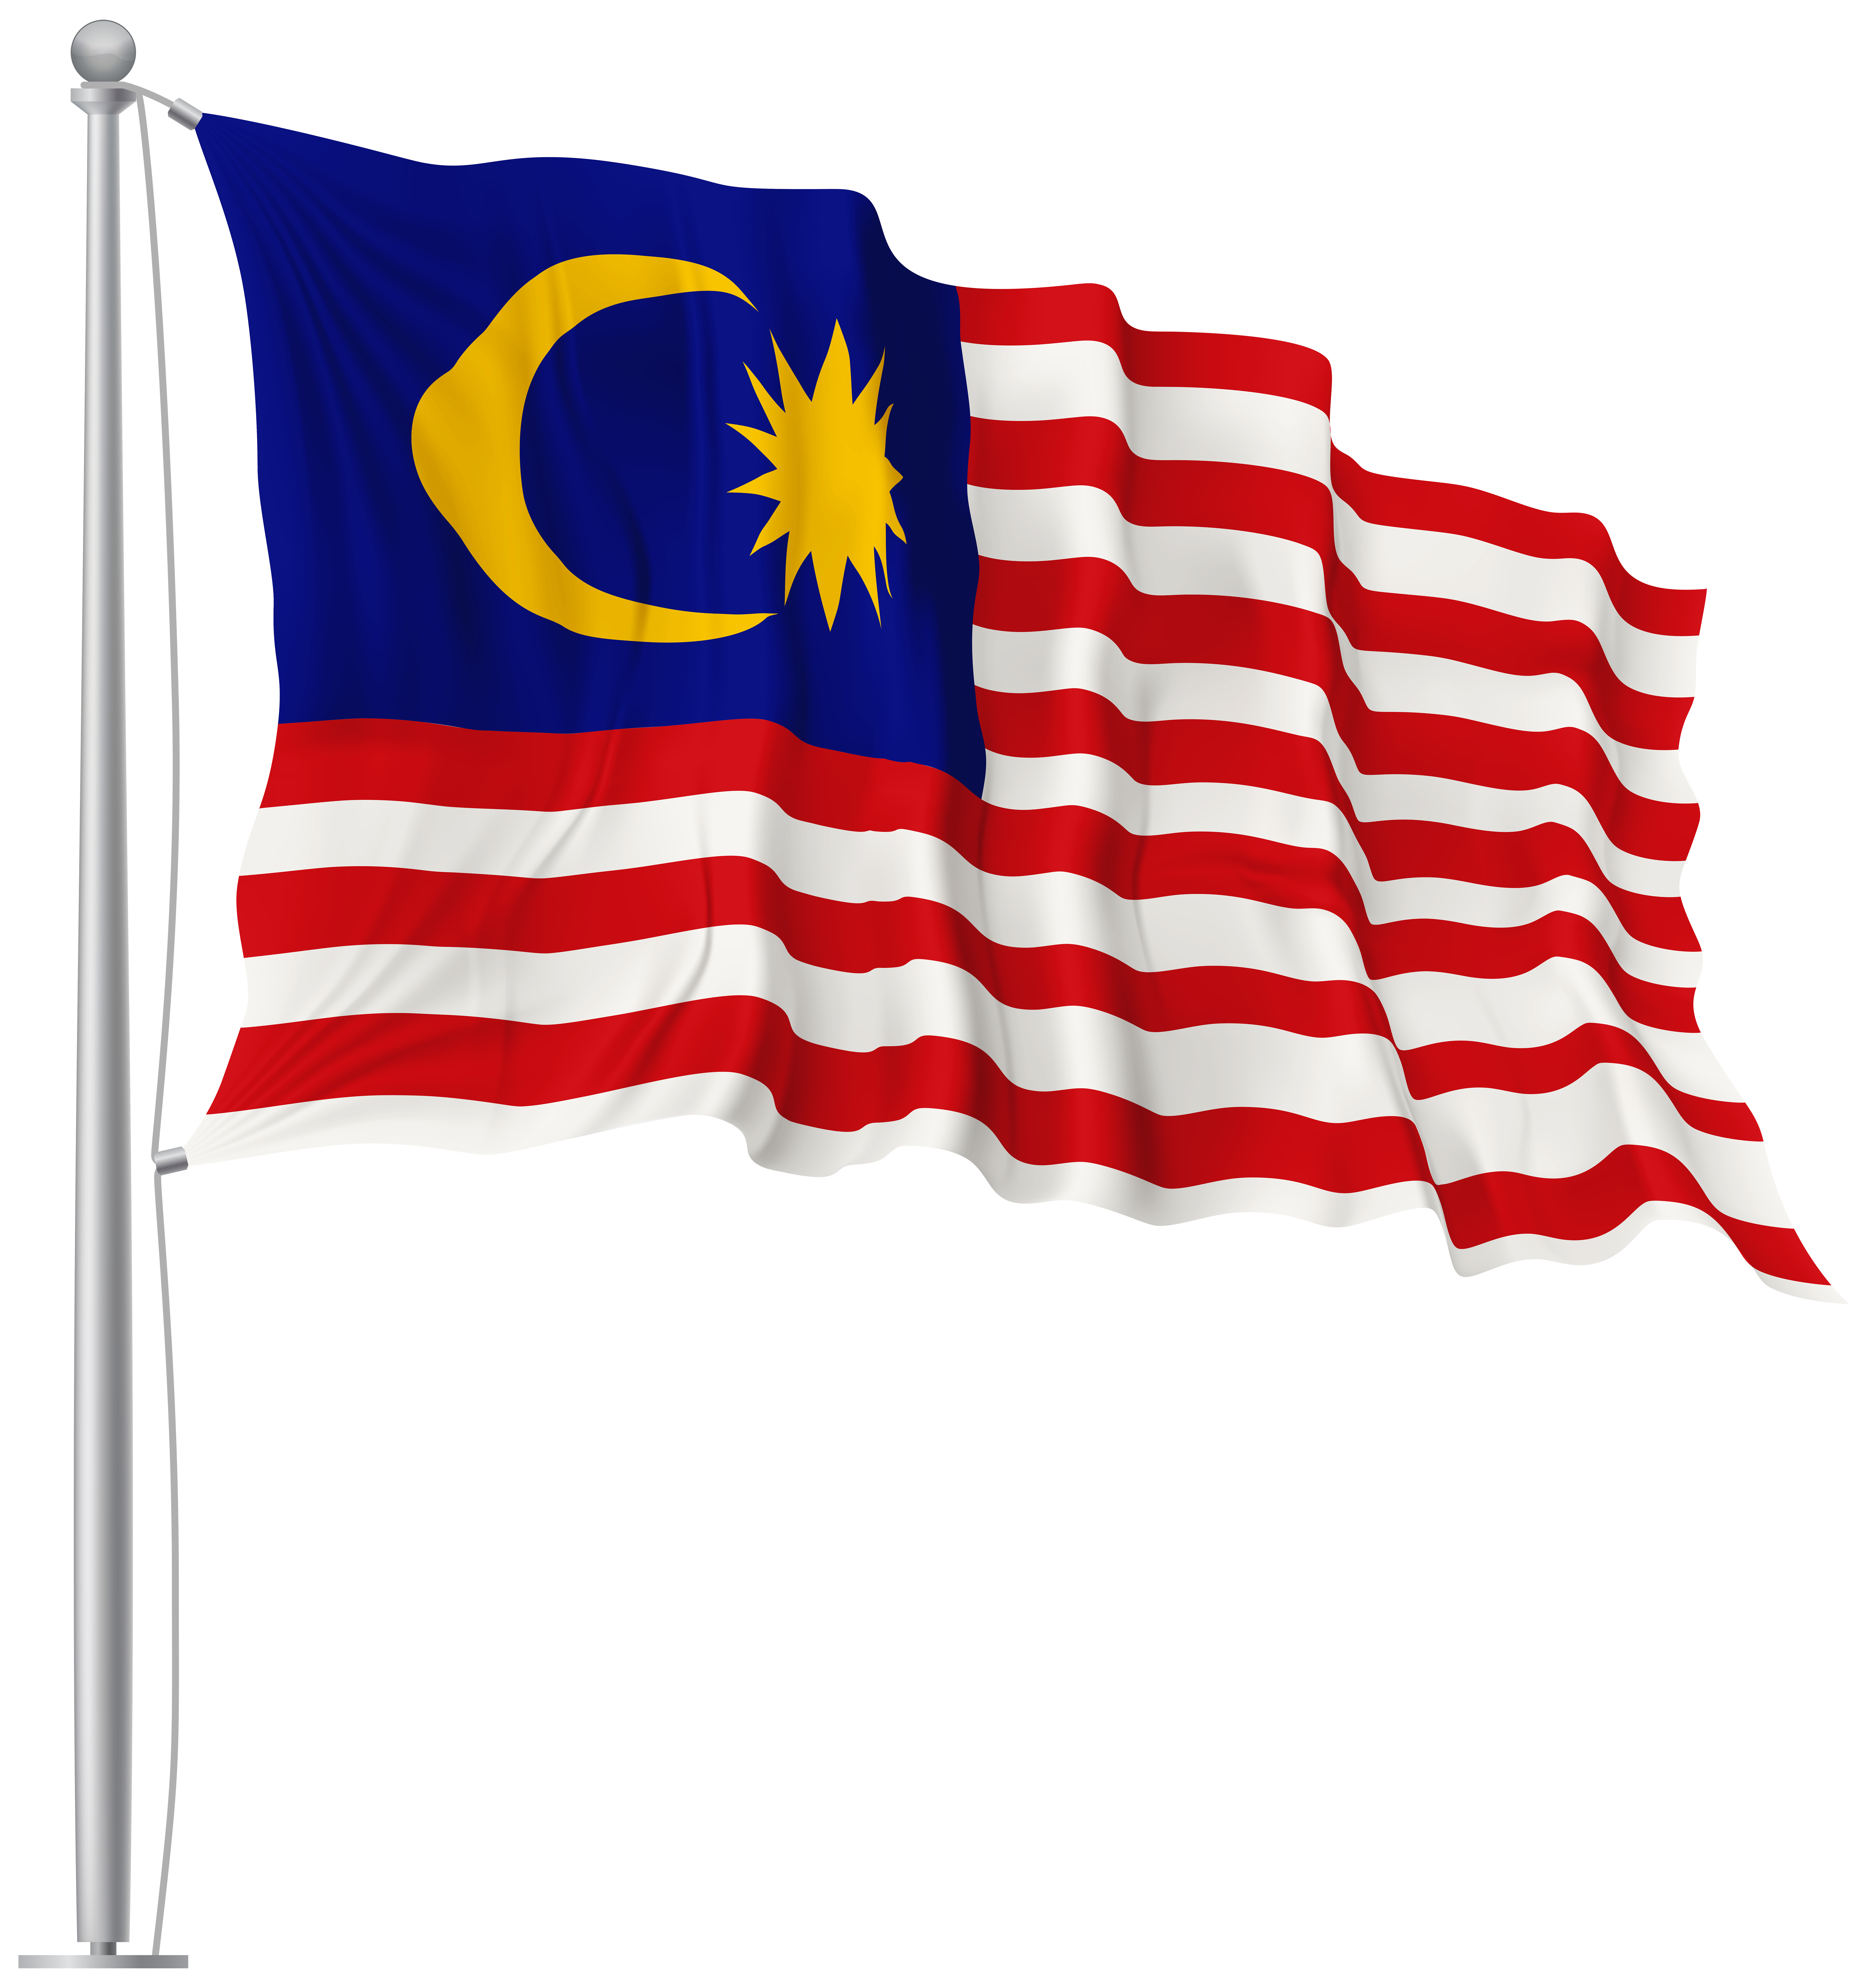 freeuse library Malaysia waving flag png. Flags clipart transparent background.